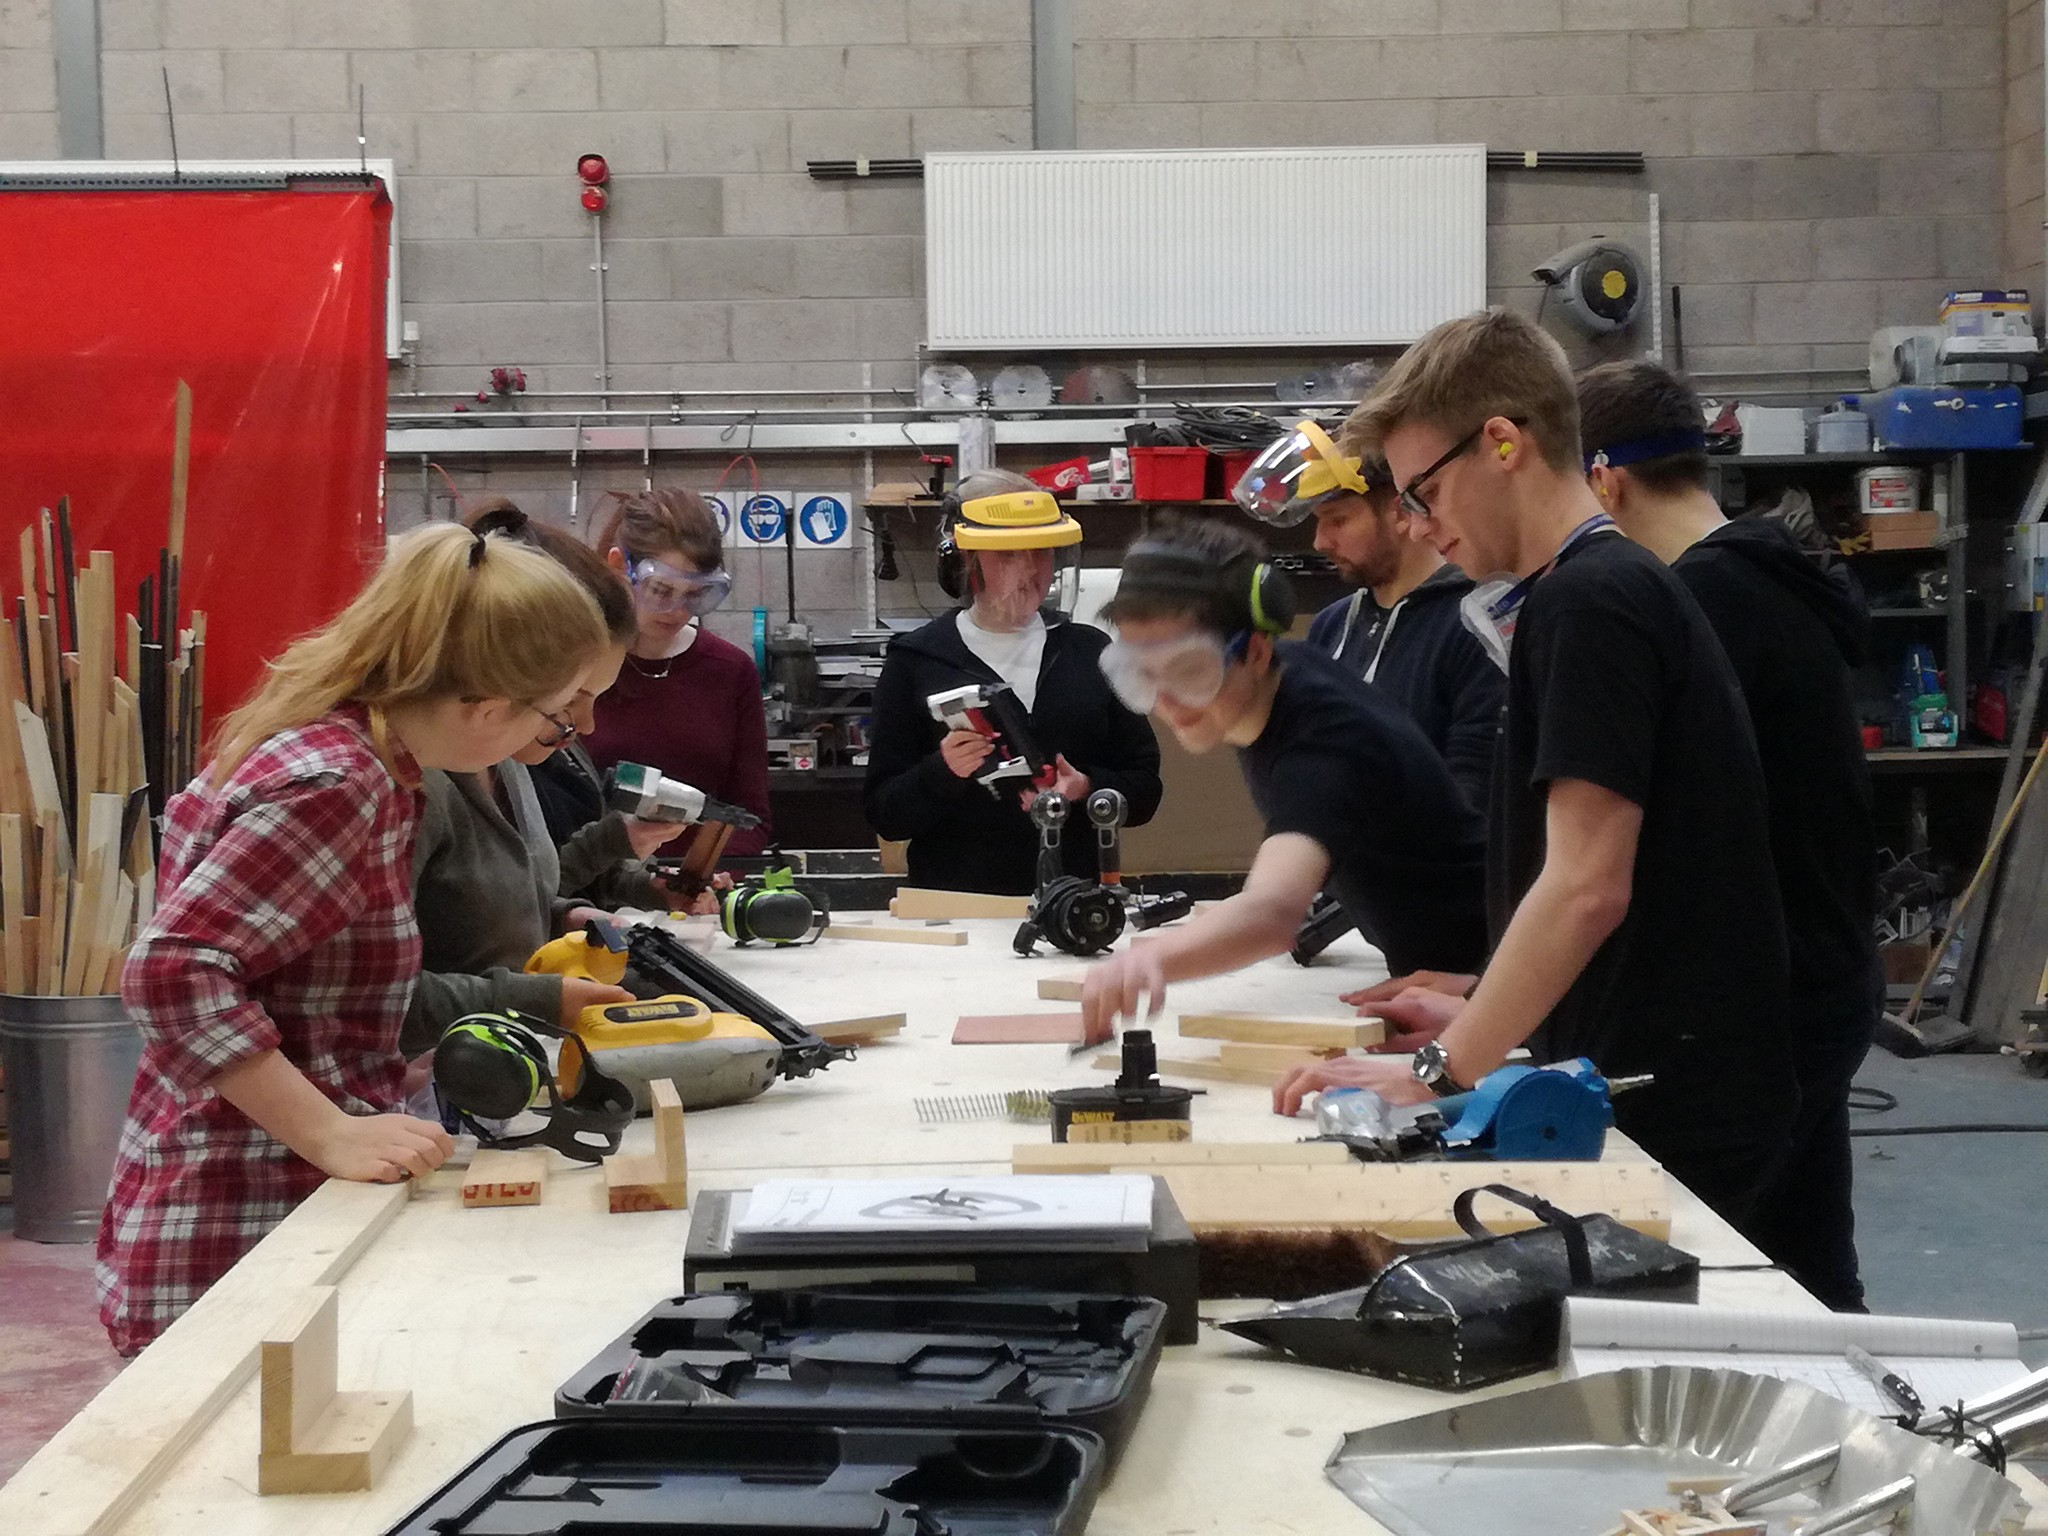 Oliver with fellow production students in the workshop